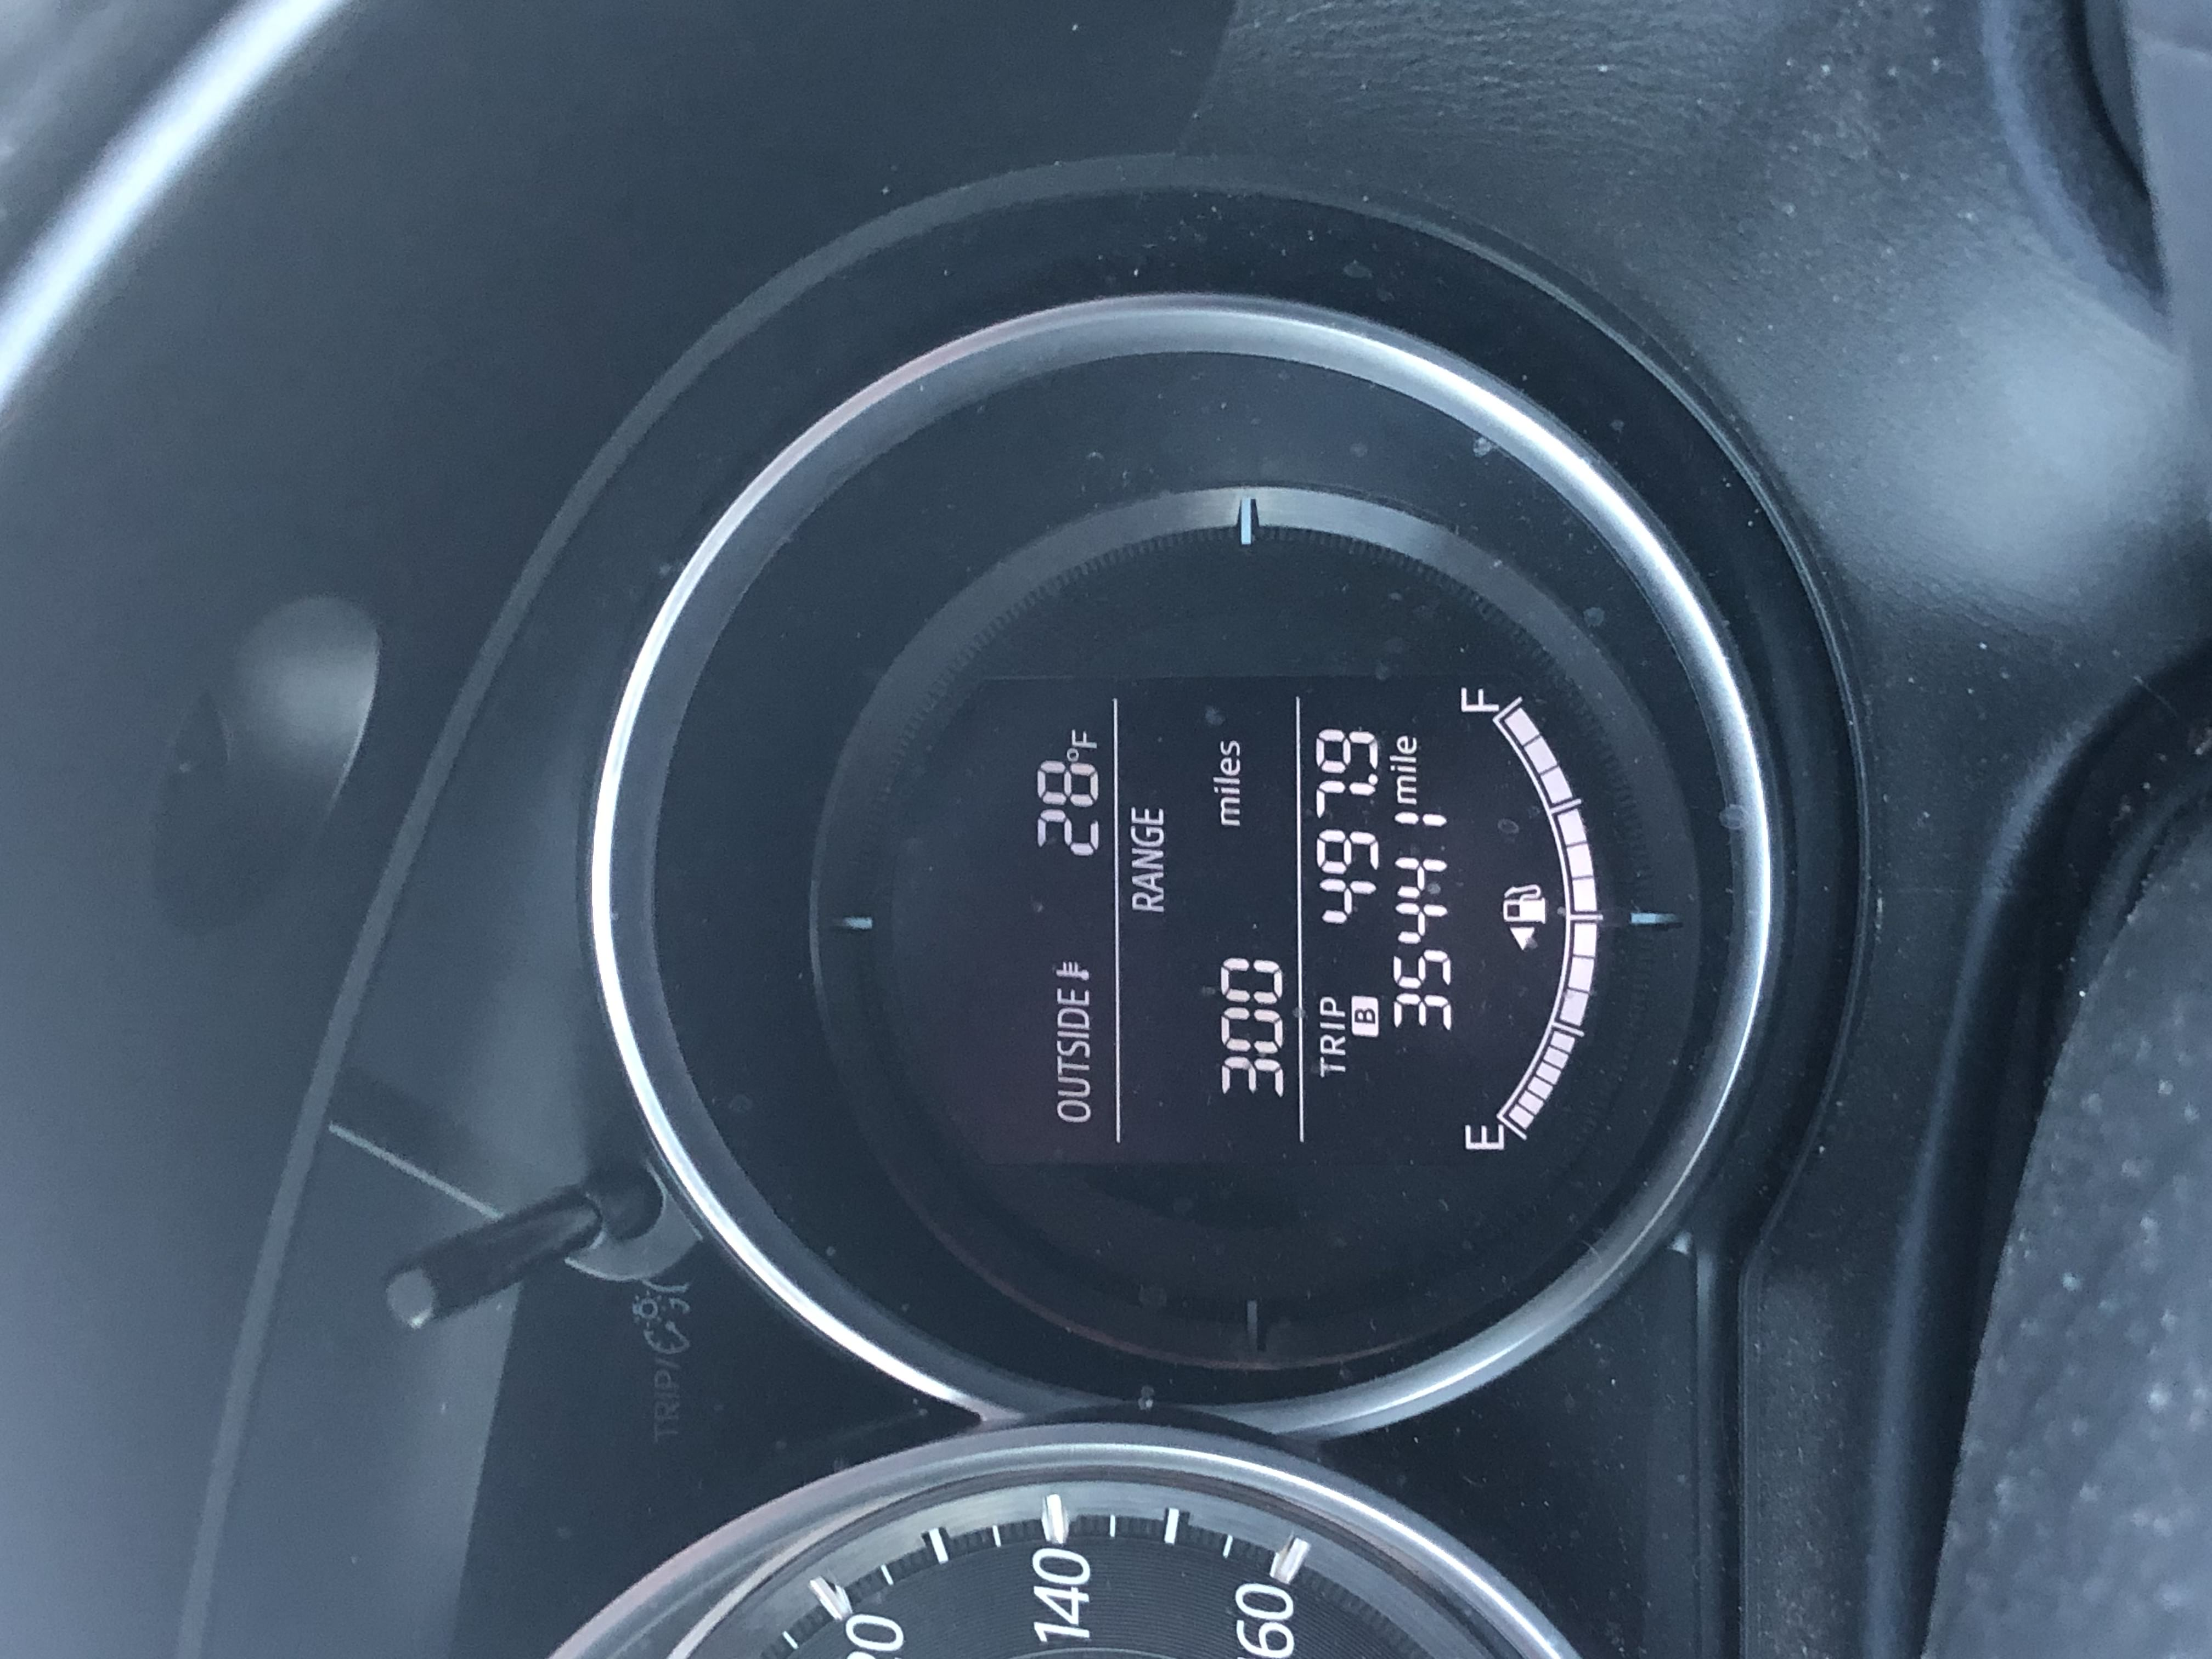 28 degrees around 7 am according to the car